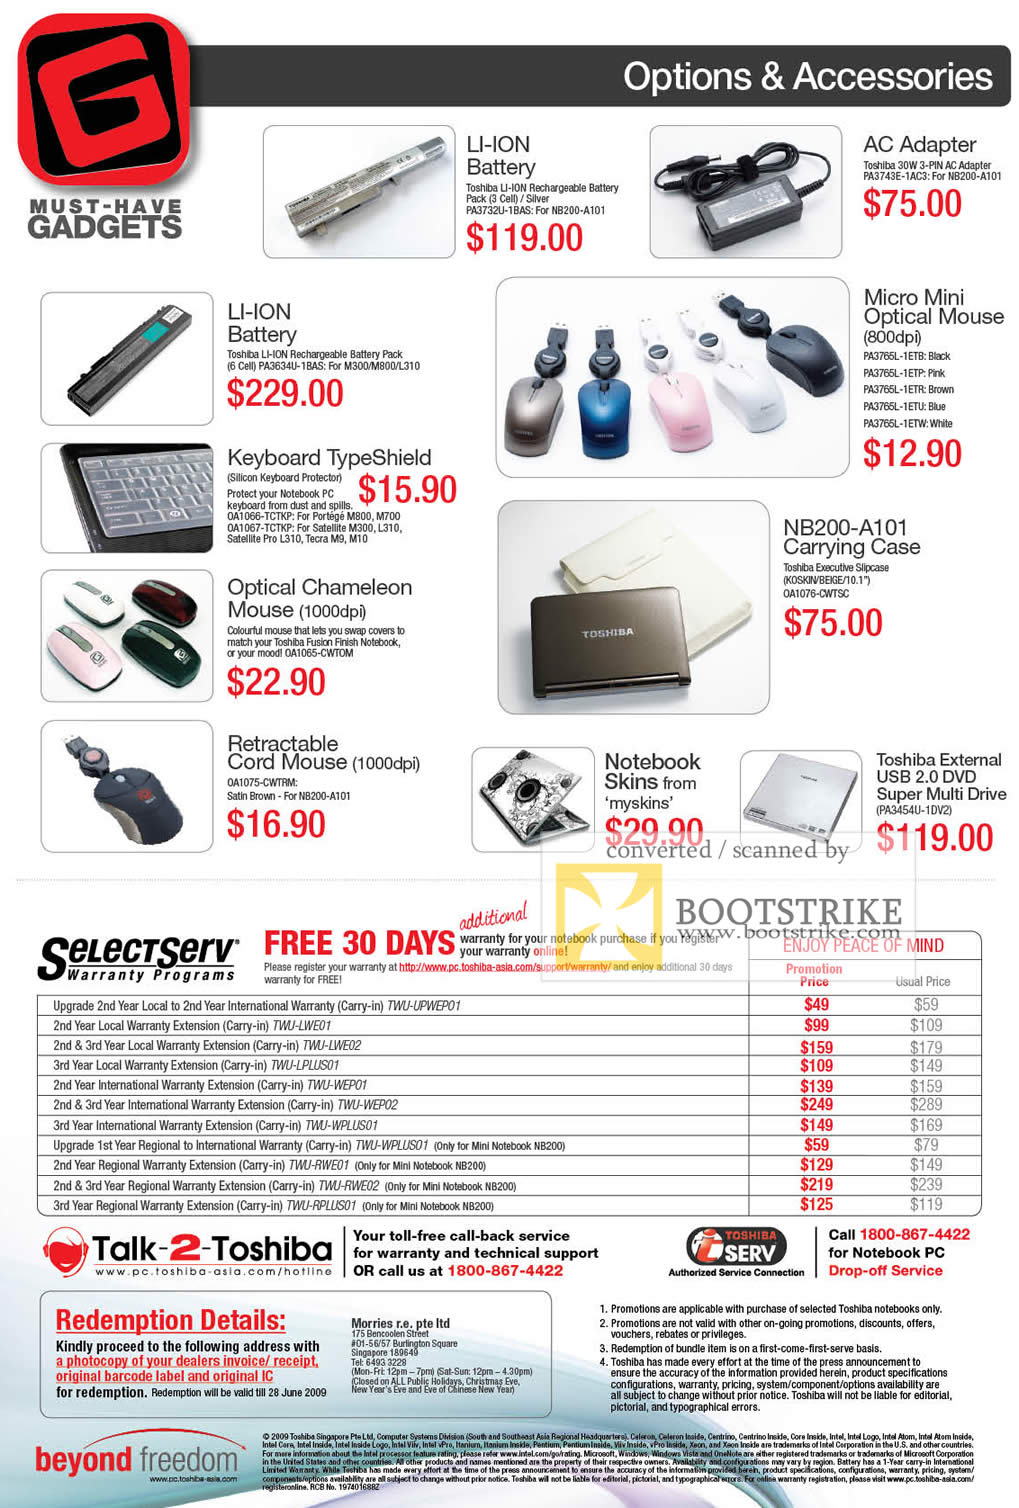 PC Show 2009 price list image brochure of Toshiba Options Accessories